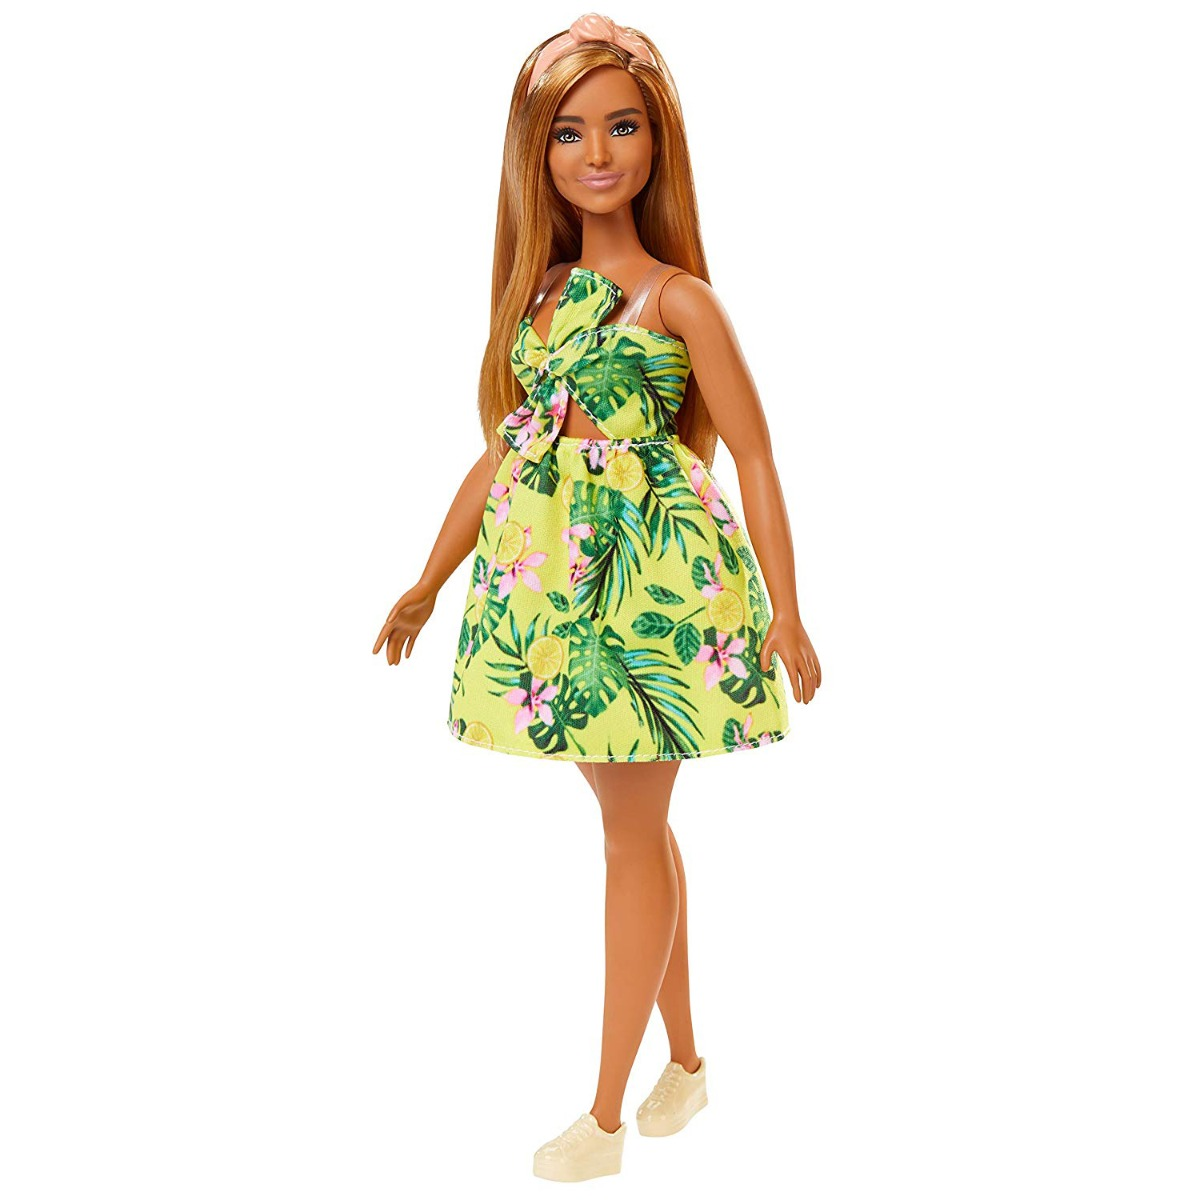 Papusa Barbie Fashionistas 126, FXL59